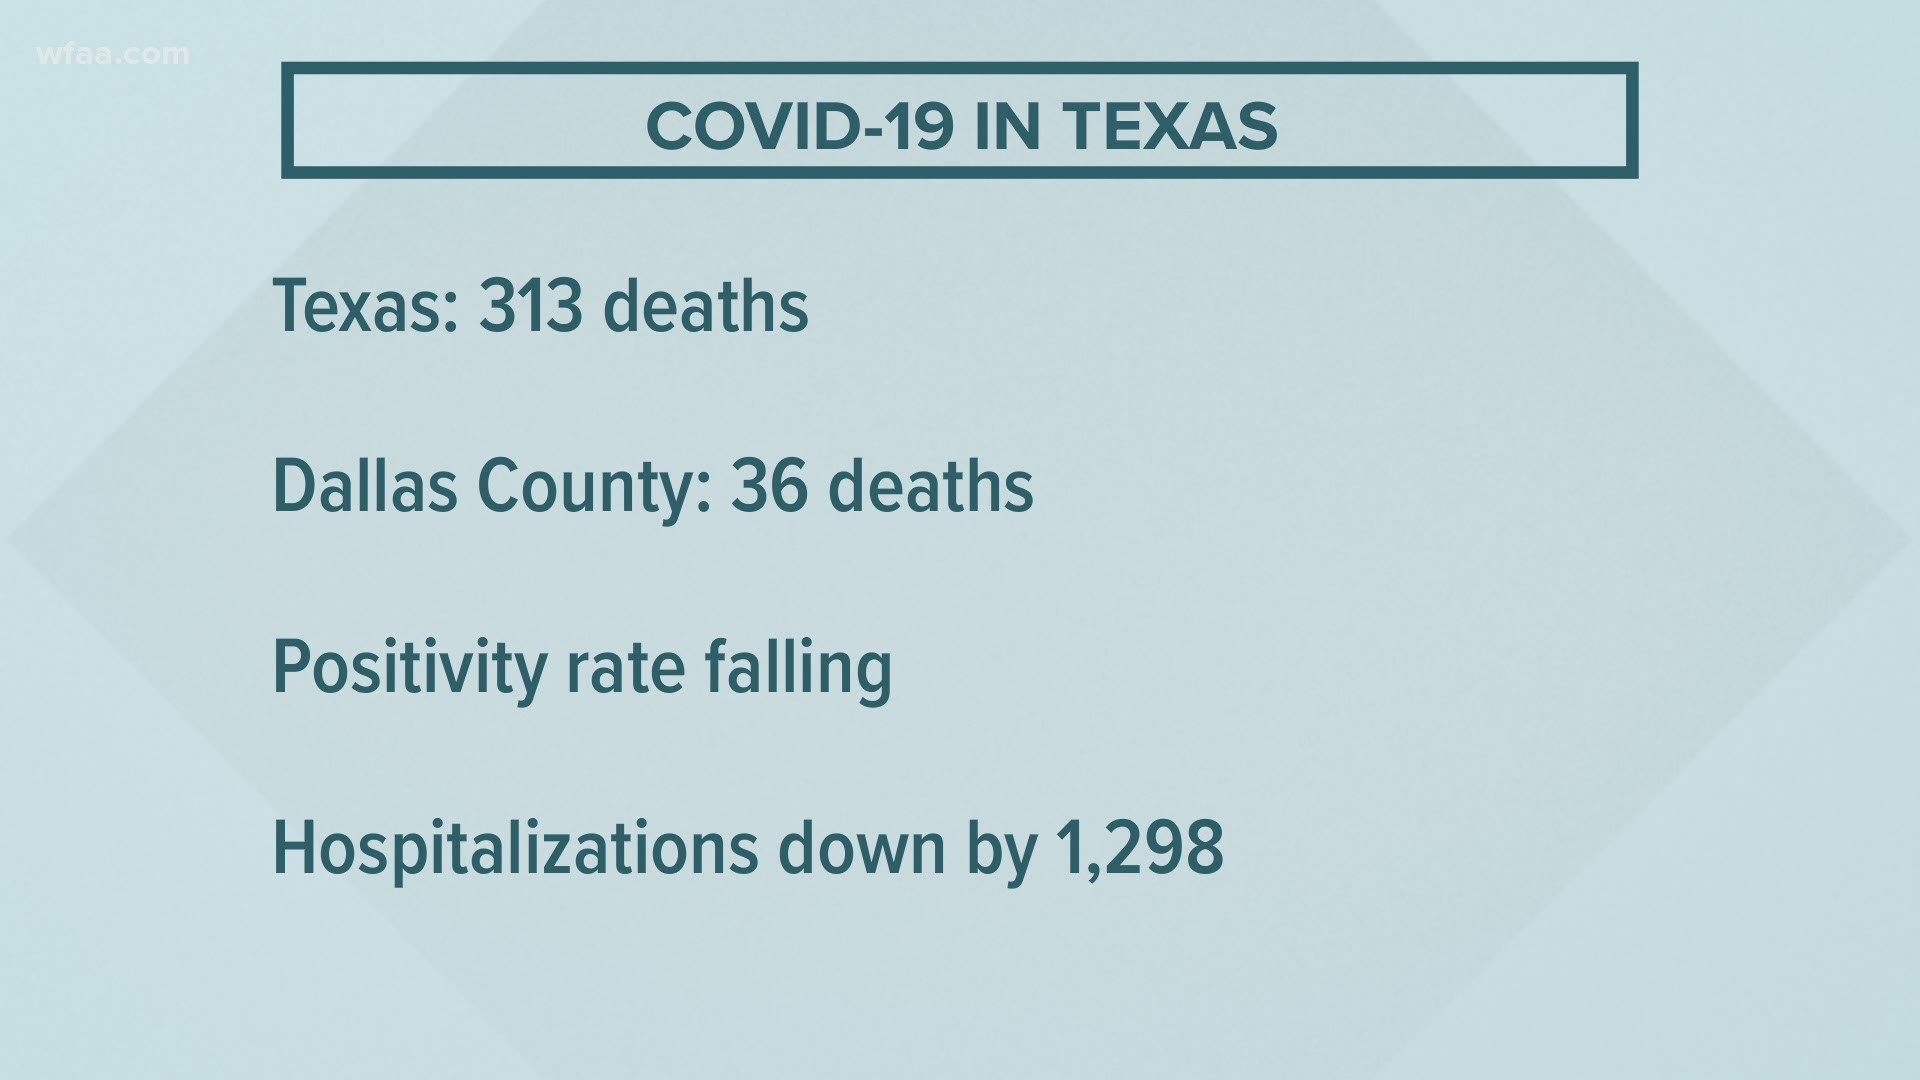 Covid 19 Updates Dallas County Reports Record 36 Deaths On Wednesday Wfaa Com